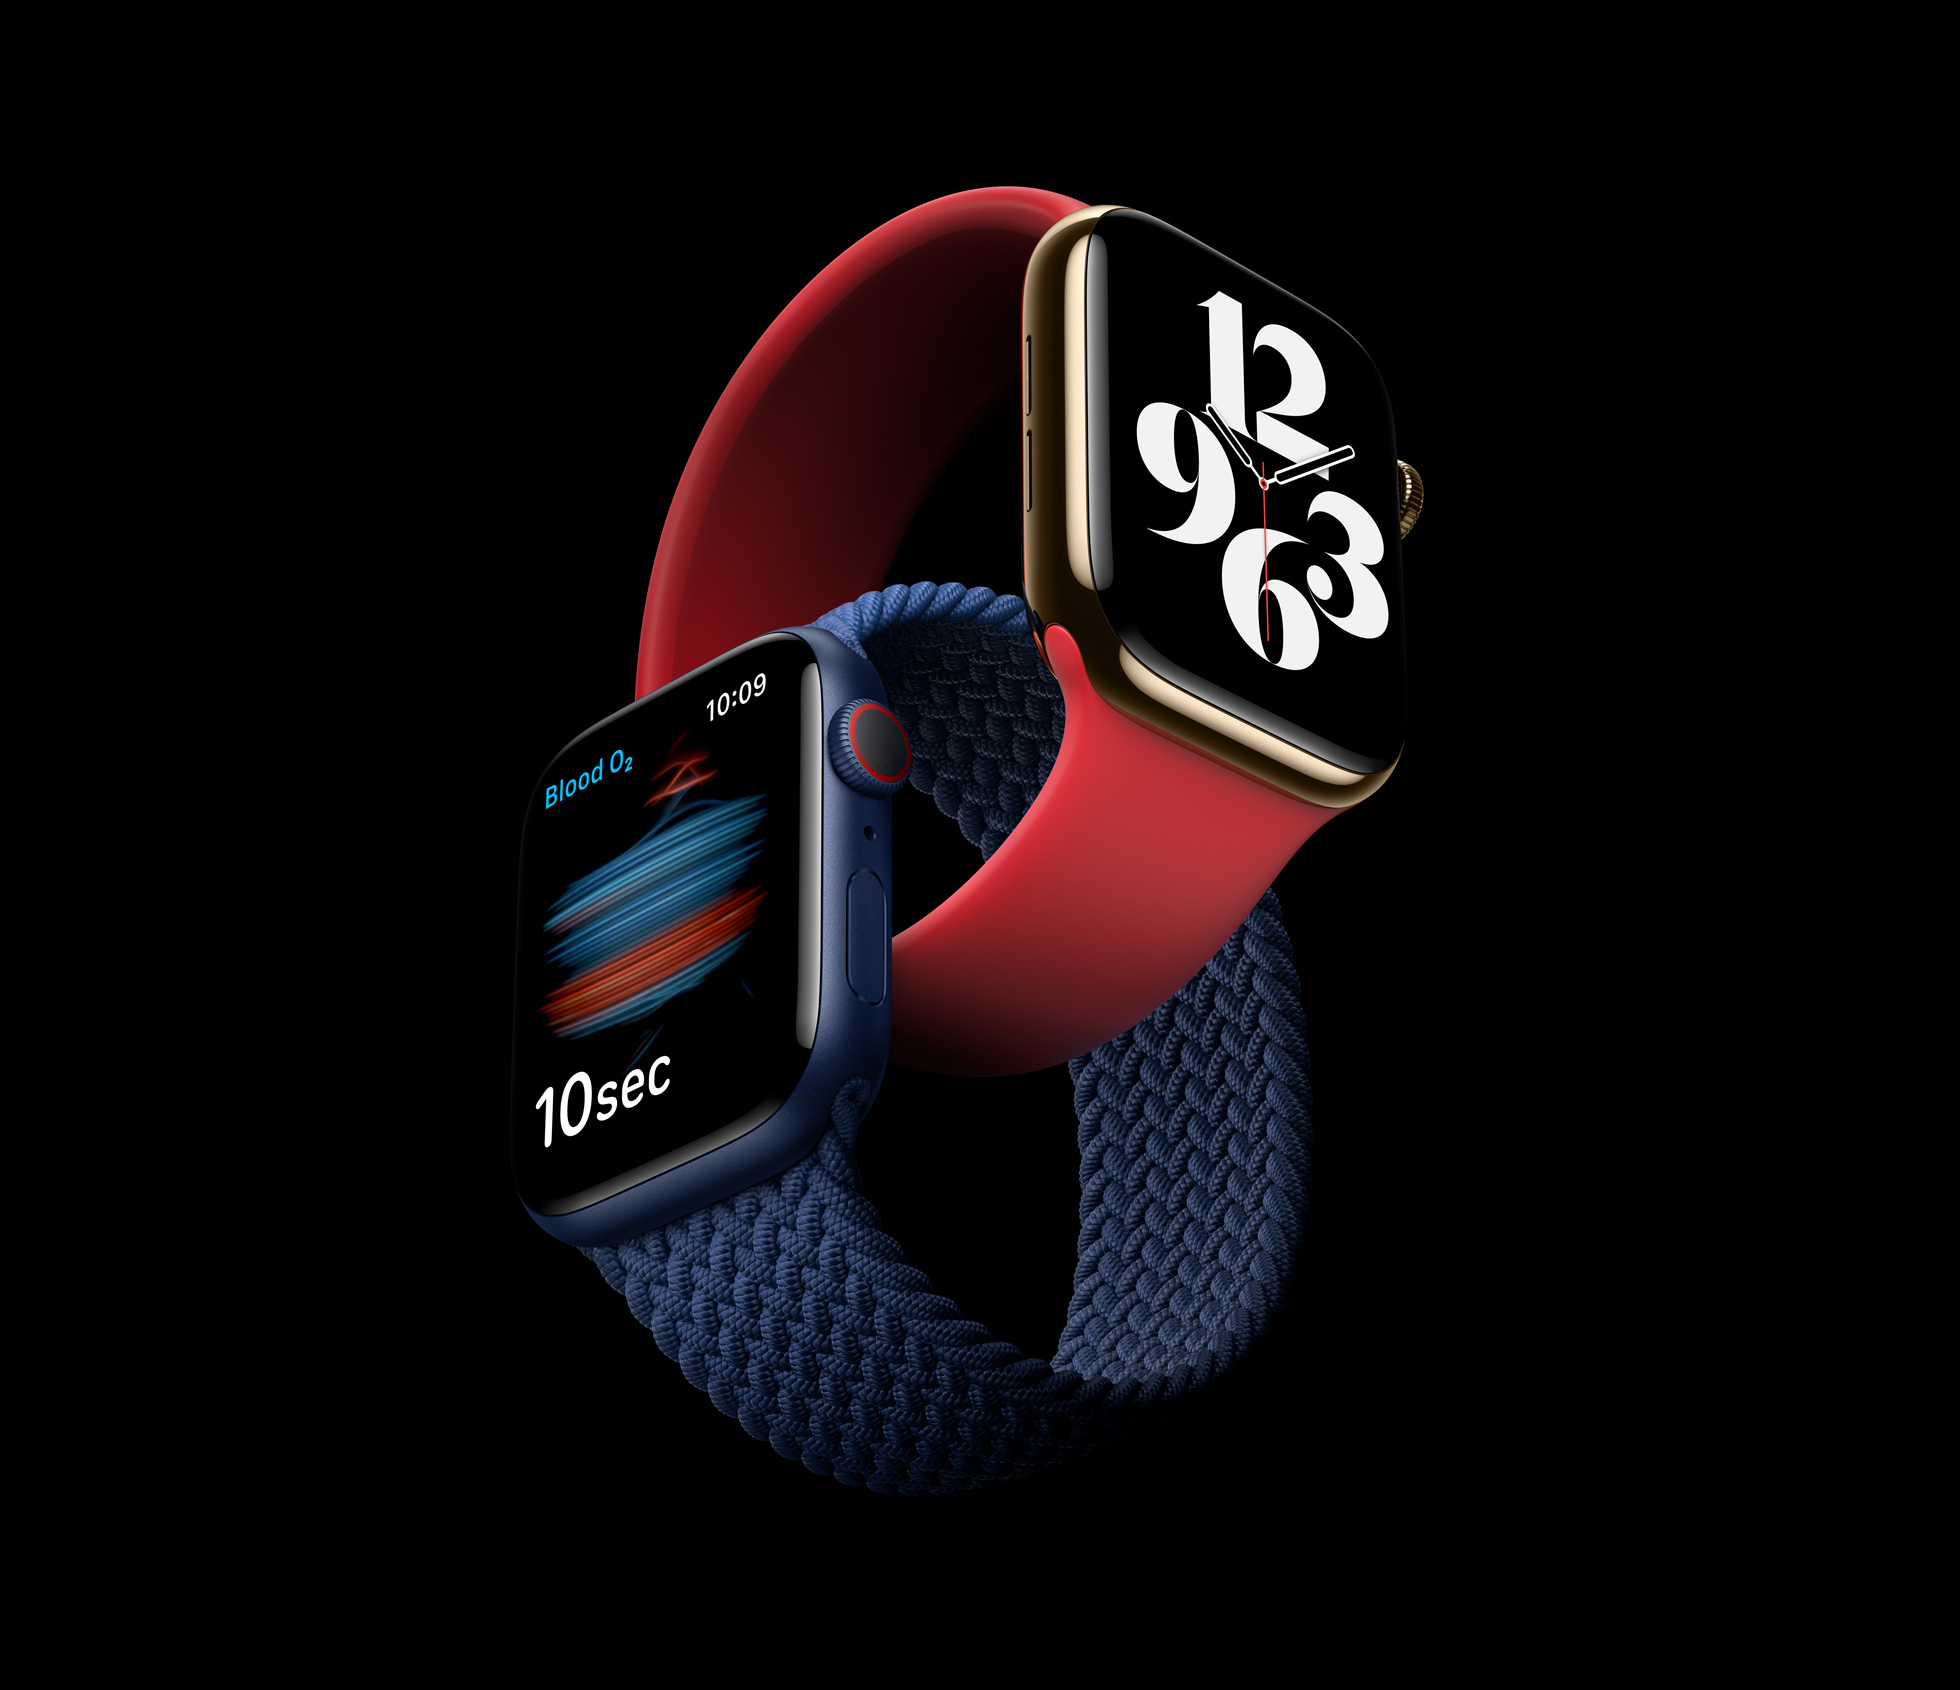 Apple delivers apple watch series 6 09152020